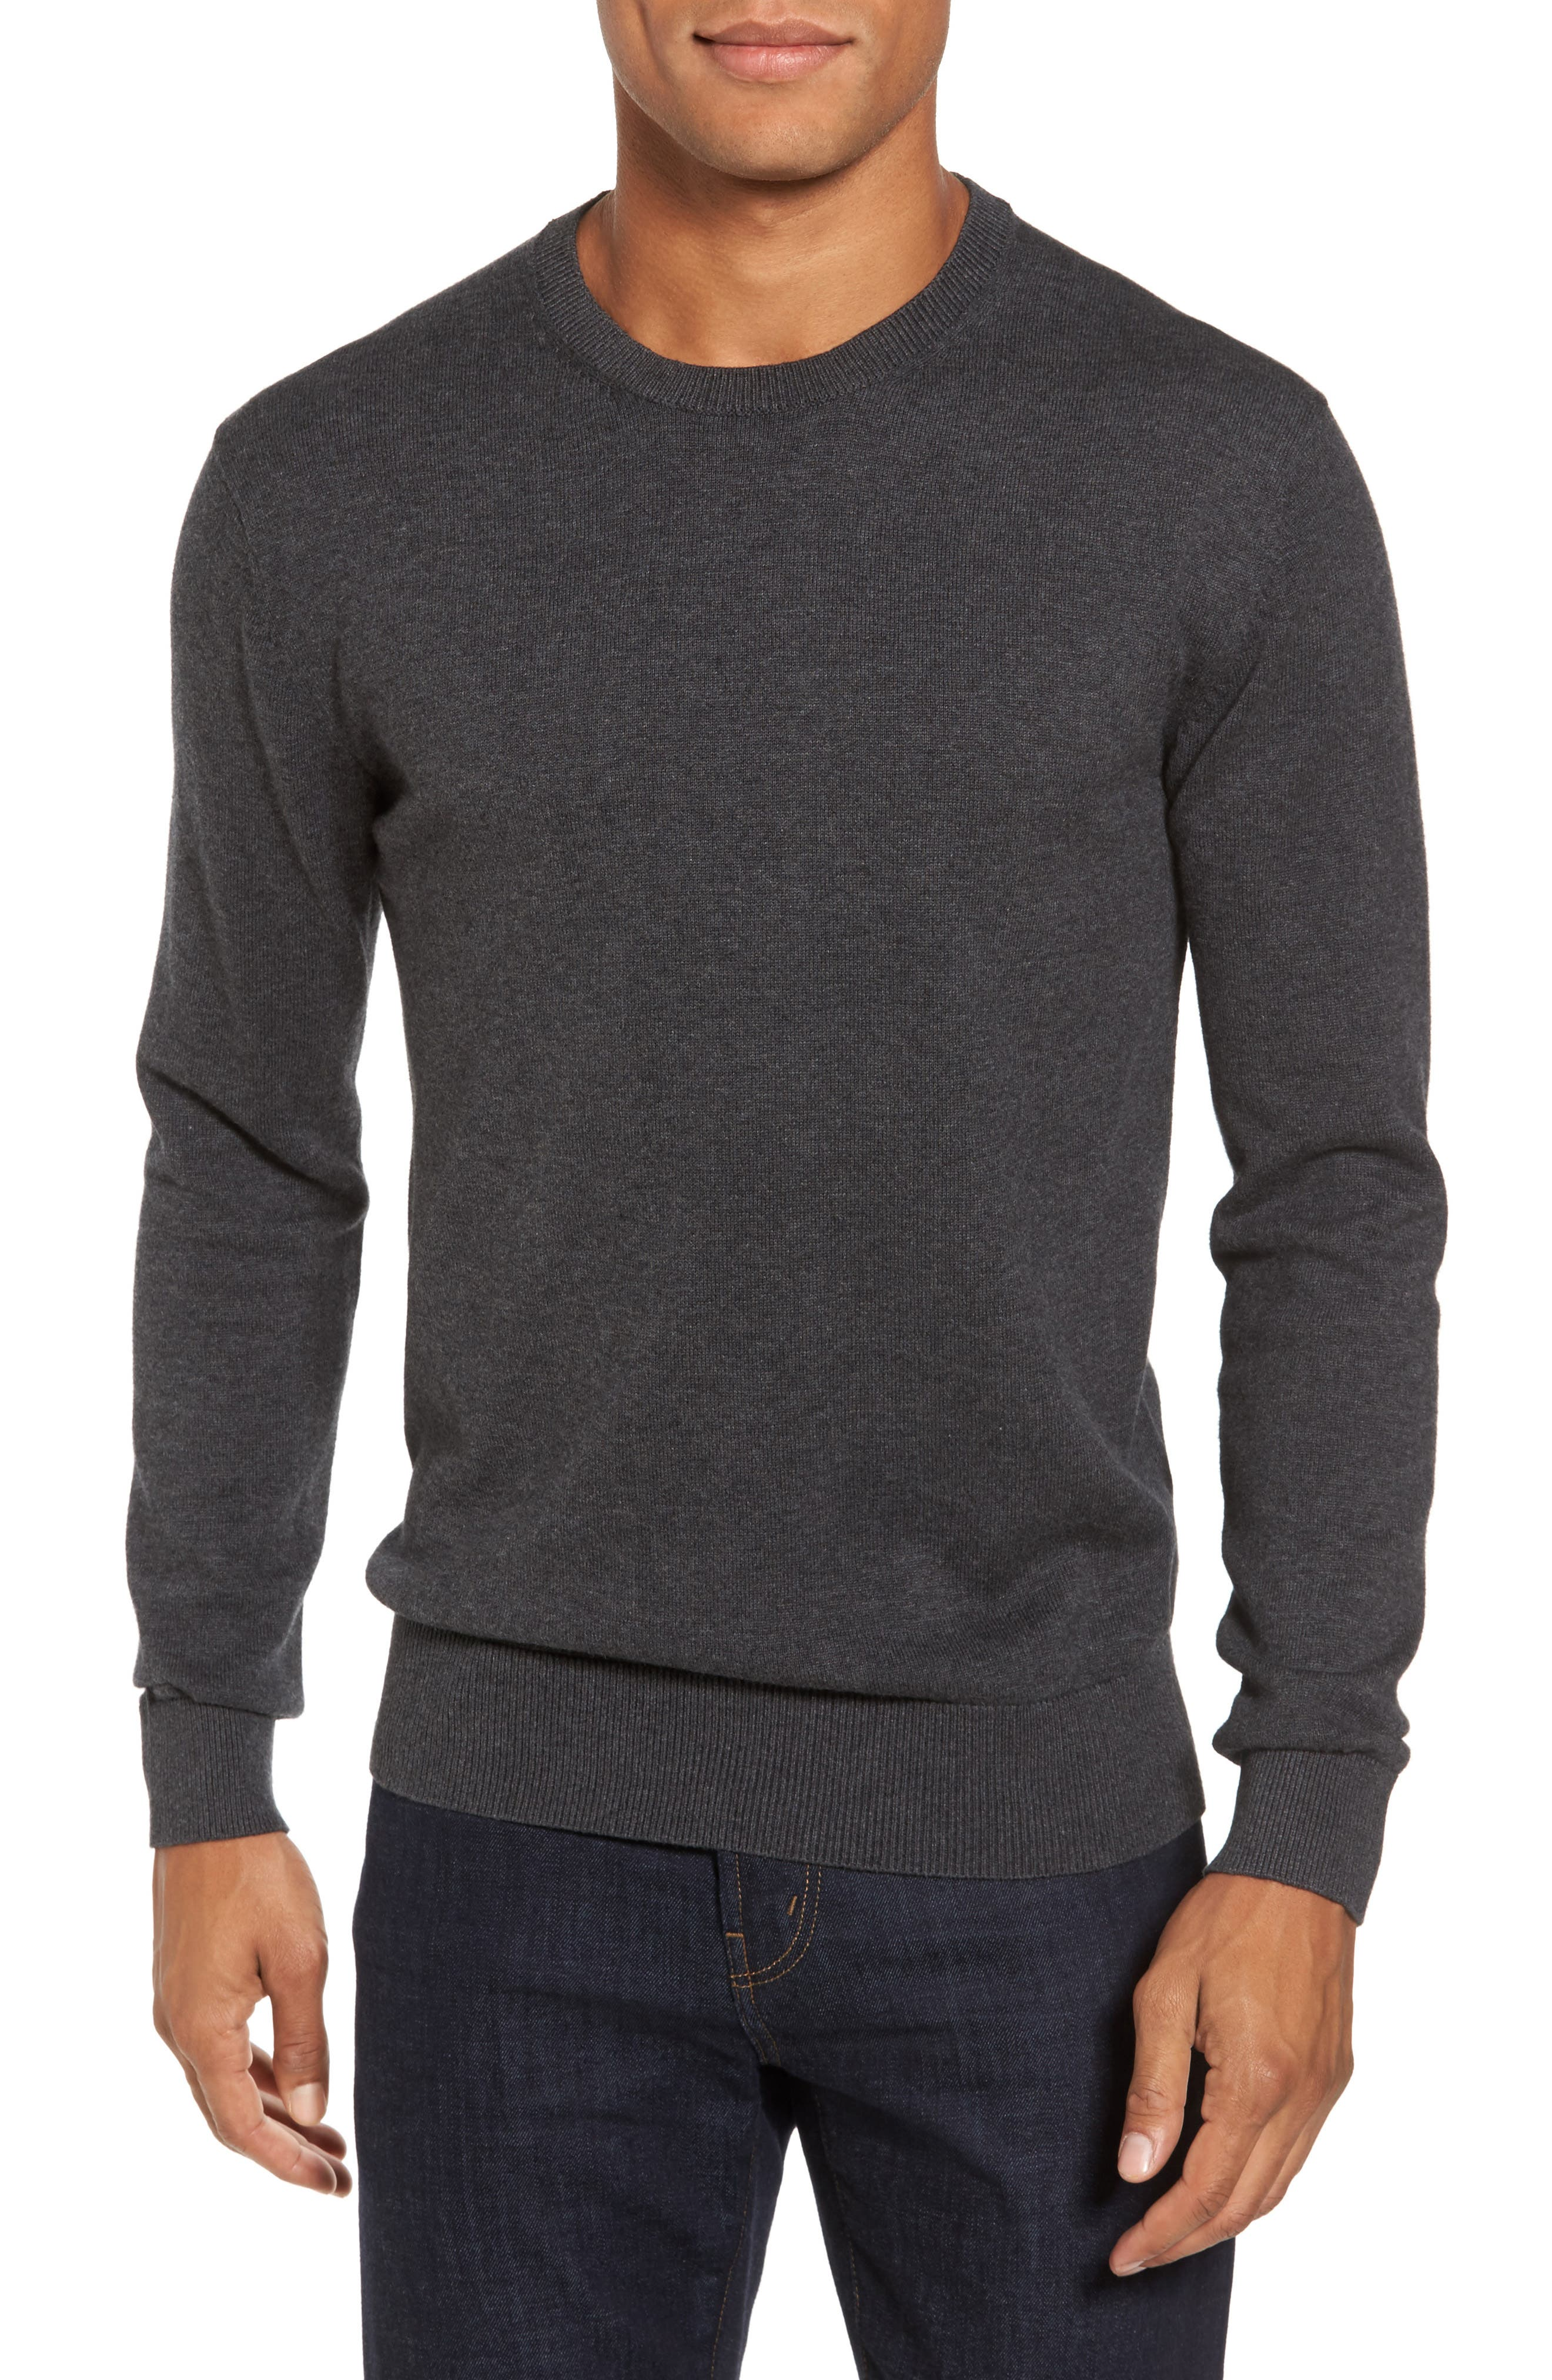 Portrait Crewneck Sweater,                         Main,                         color, 015